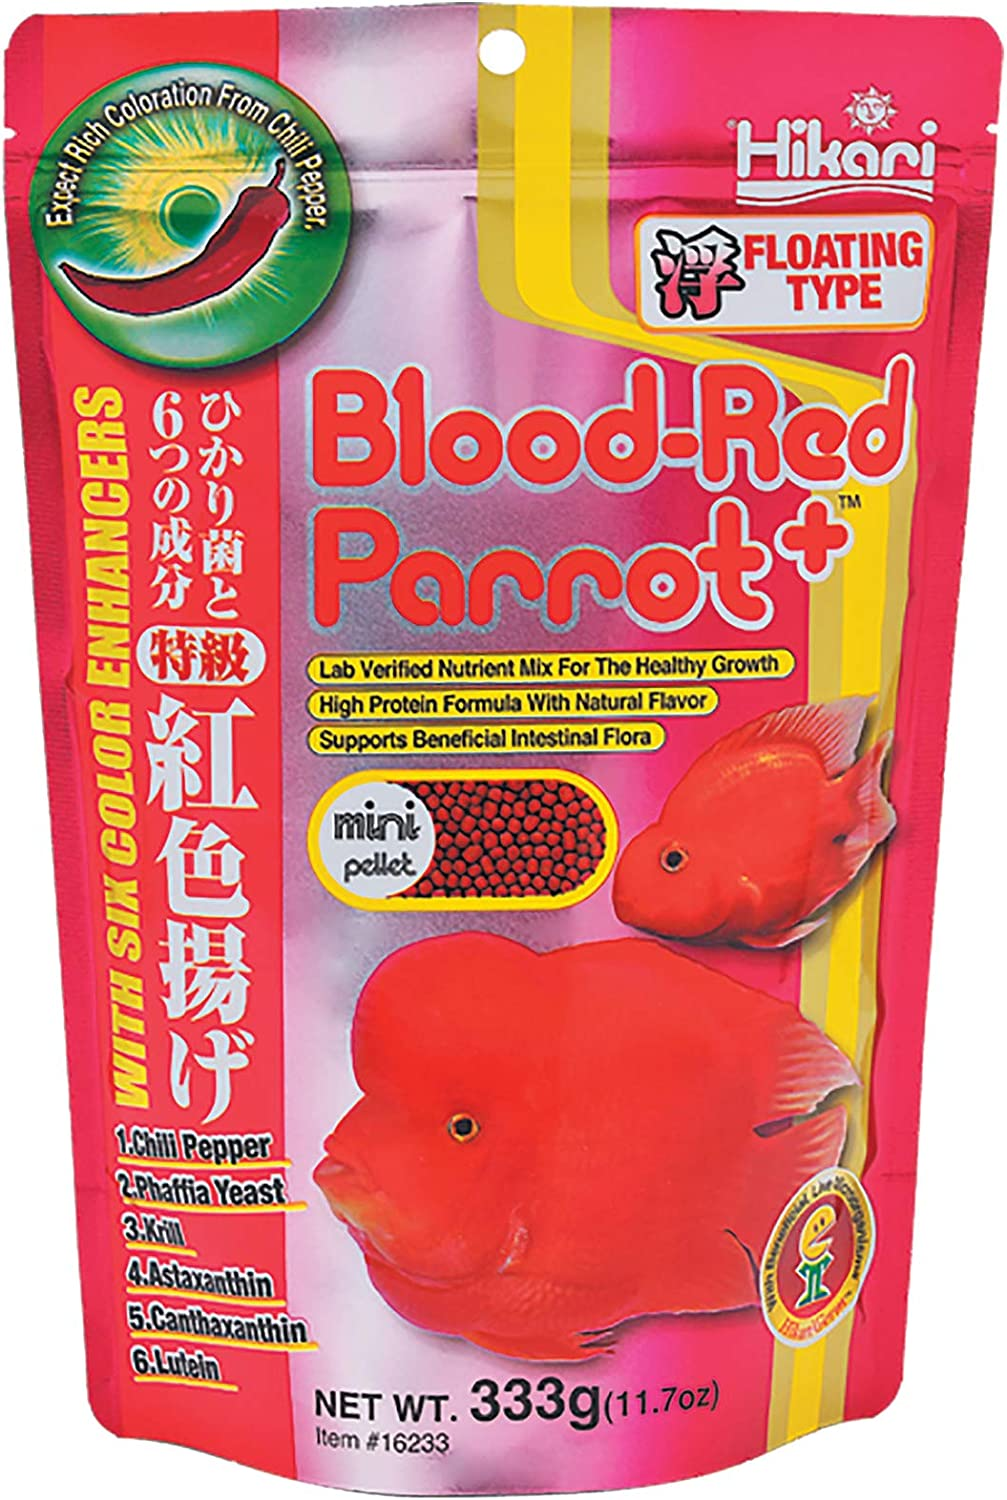 Hikari Blood Red Parrot+ Fish Food, Mini Pellets, 11.7 oz. (333g)